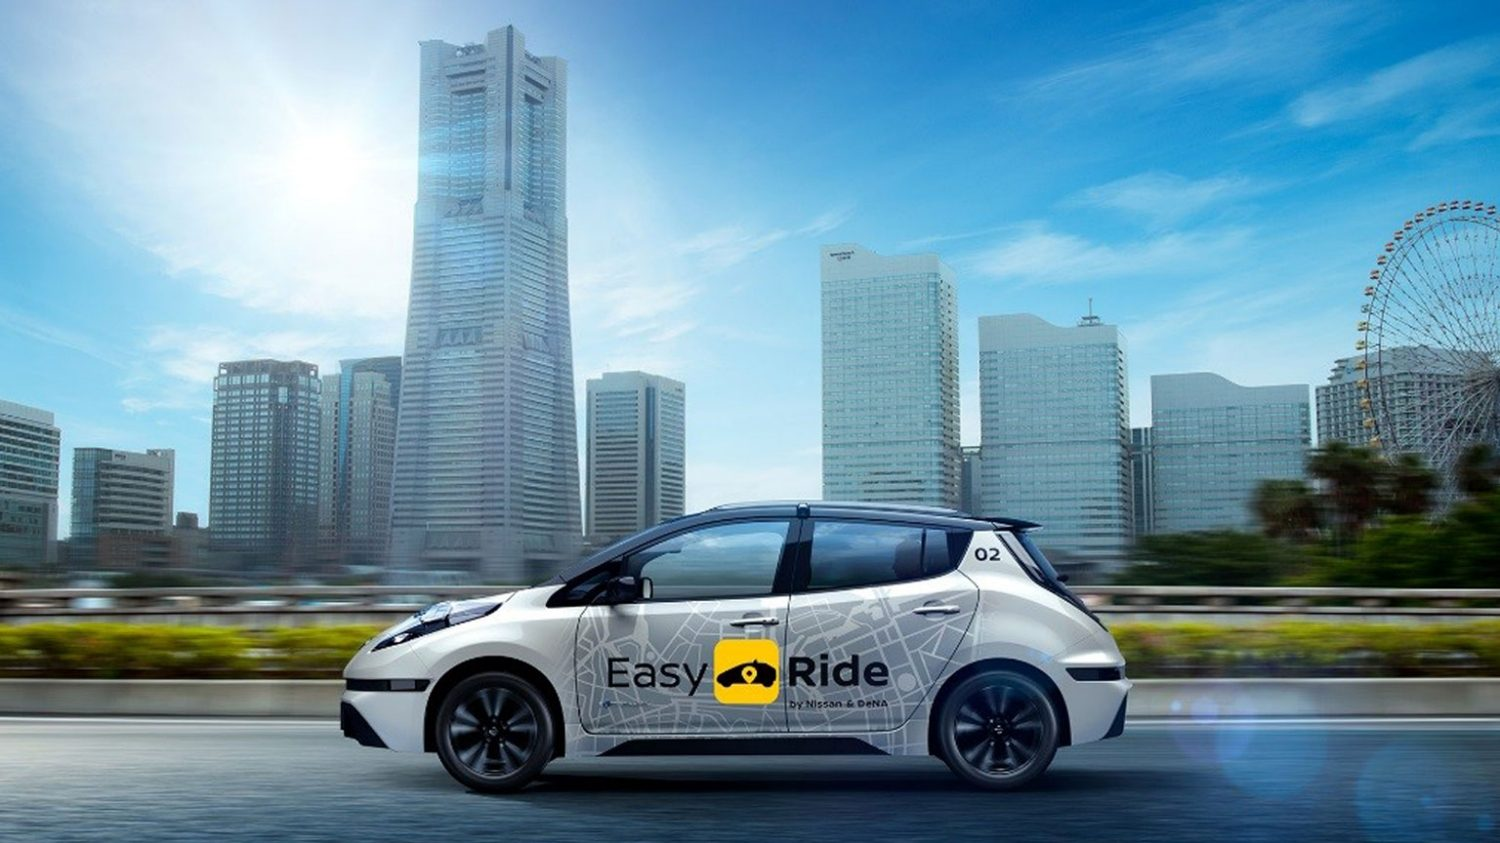 Nissan and DeNA unveil Easy Ride mobility service